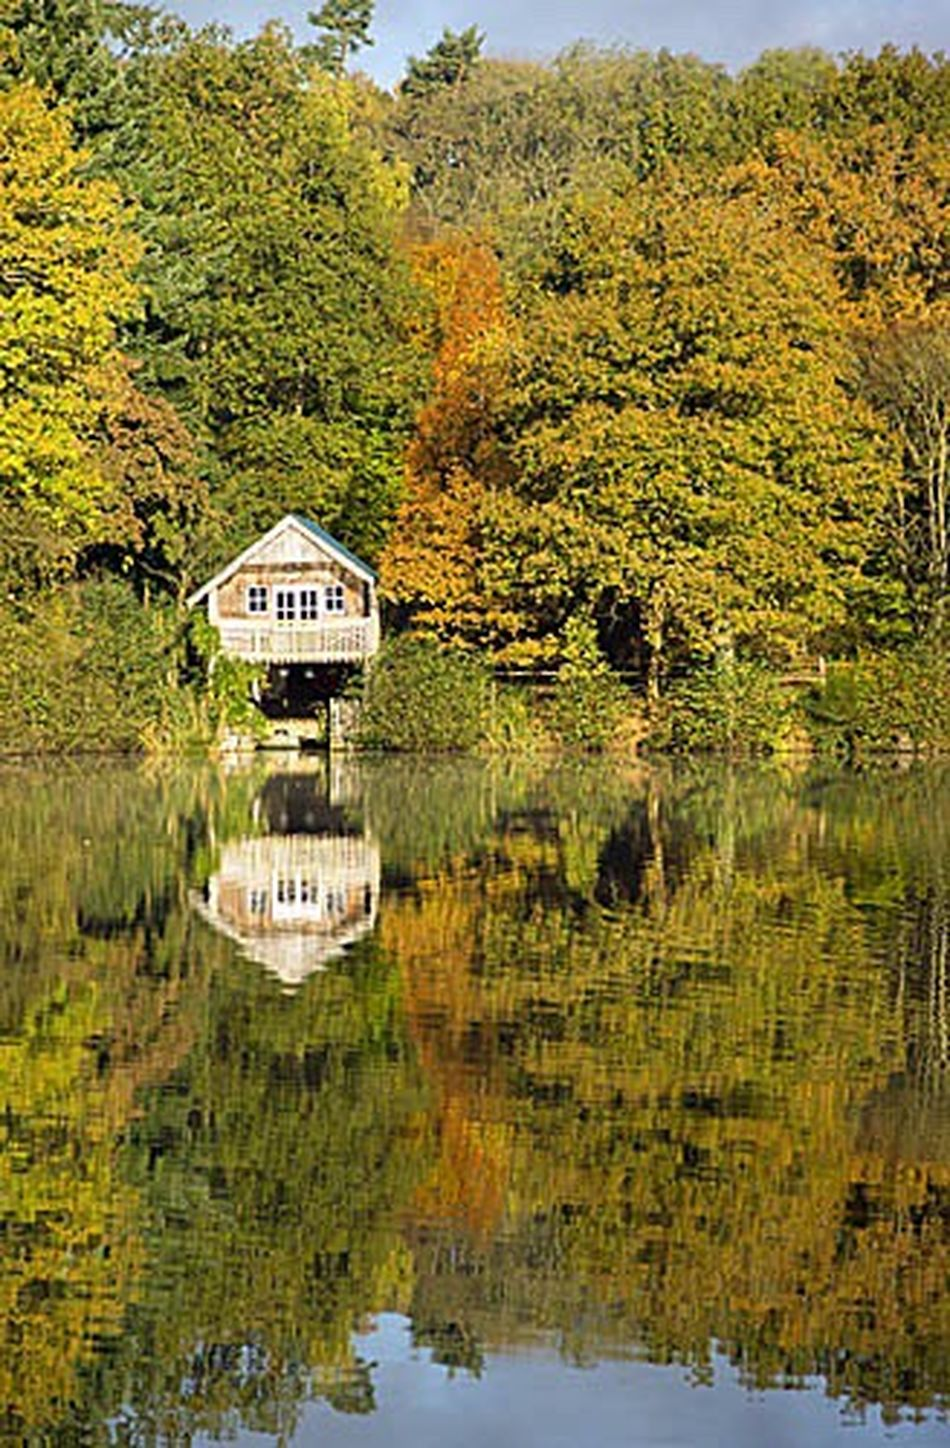 Winkworth Arboretum in Godalming Surrey, UK. Godalming Surrey Surrey Countryside Winkworth Arboretum Autumn Autumn Colors Autumn Leaves Fall Fall Colors Fall Beauty